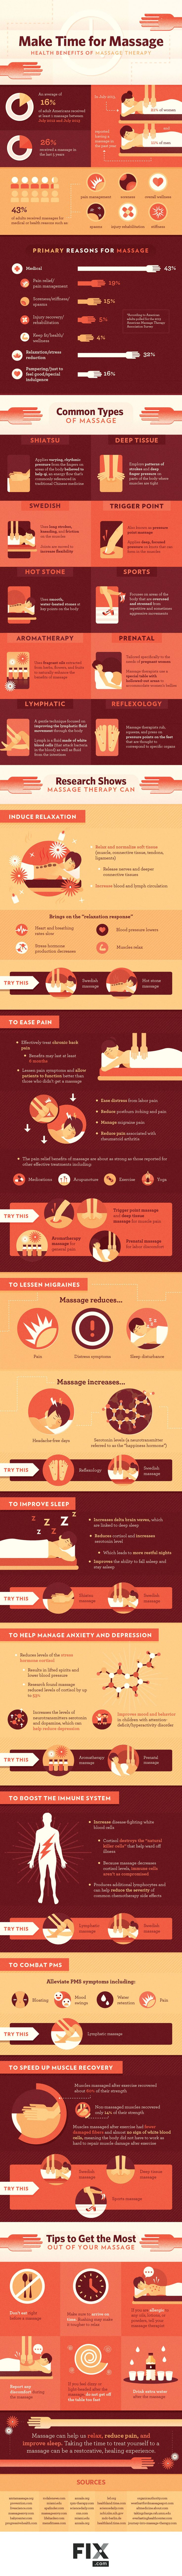 Why Massages Are Great For Your Health (Infographic) - mindbodygreen.com